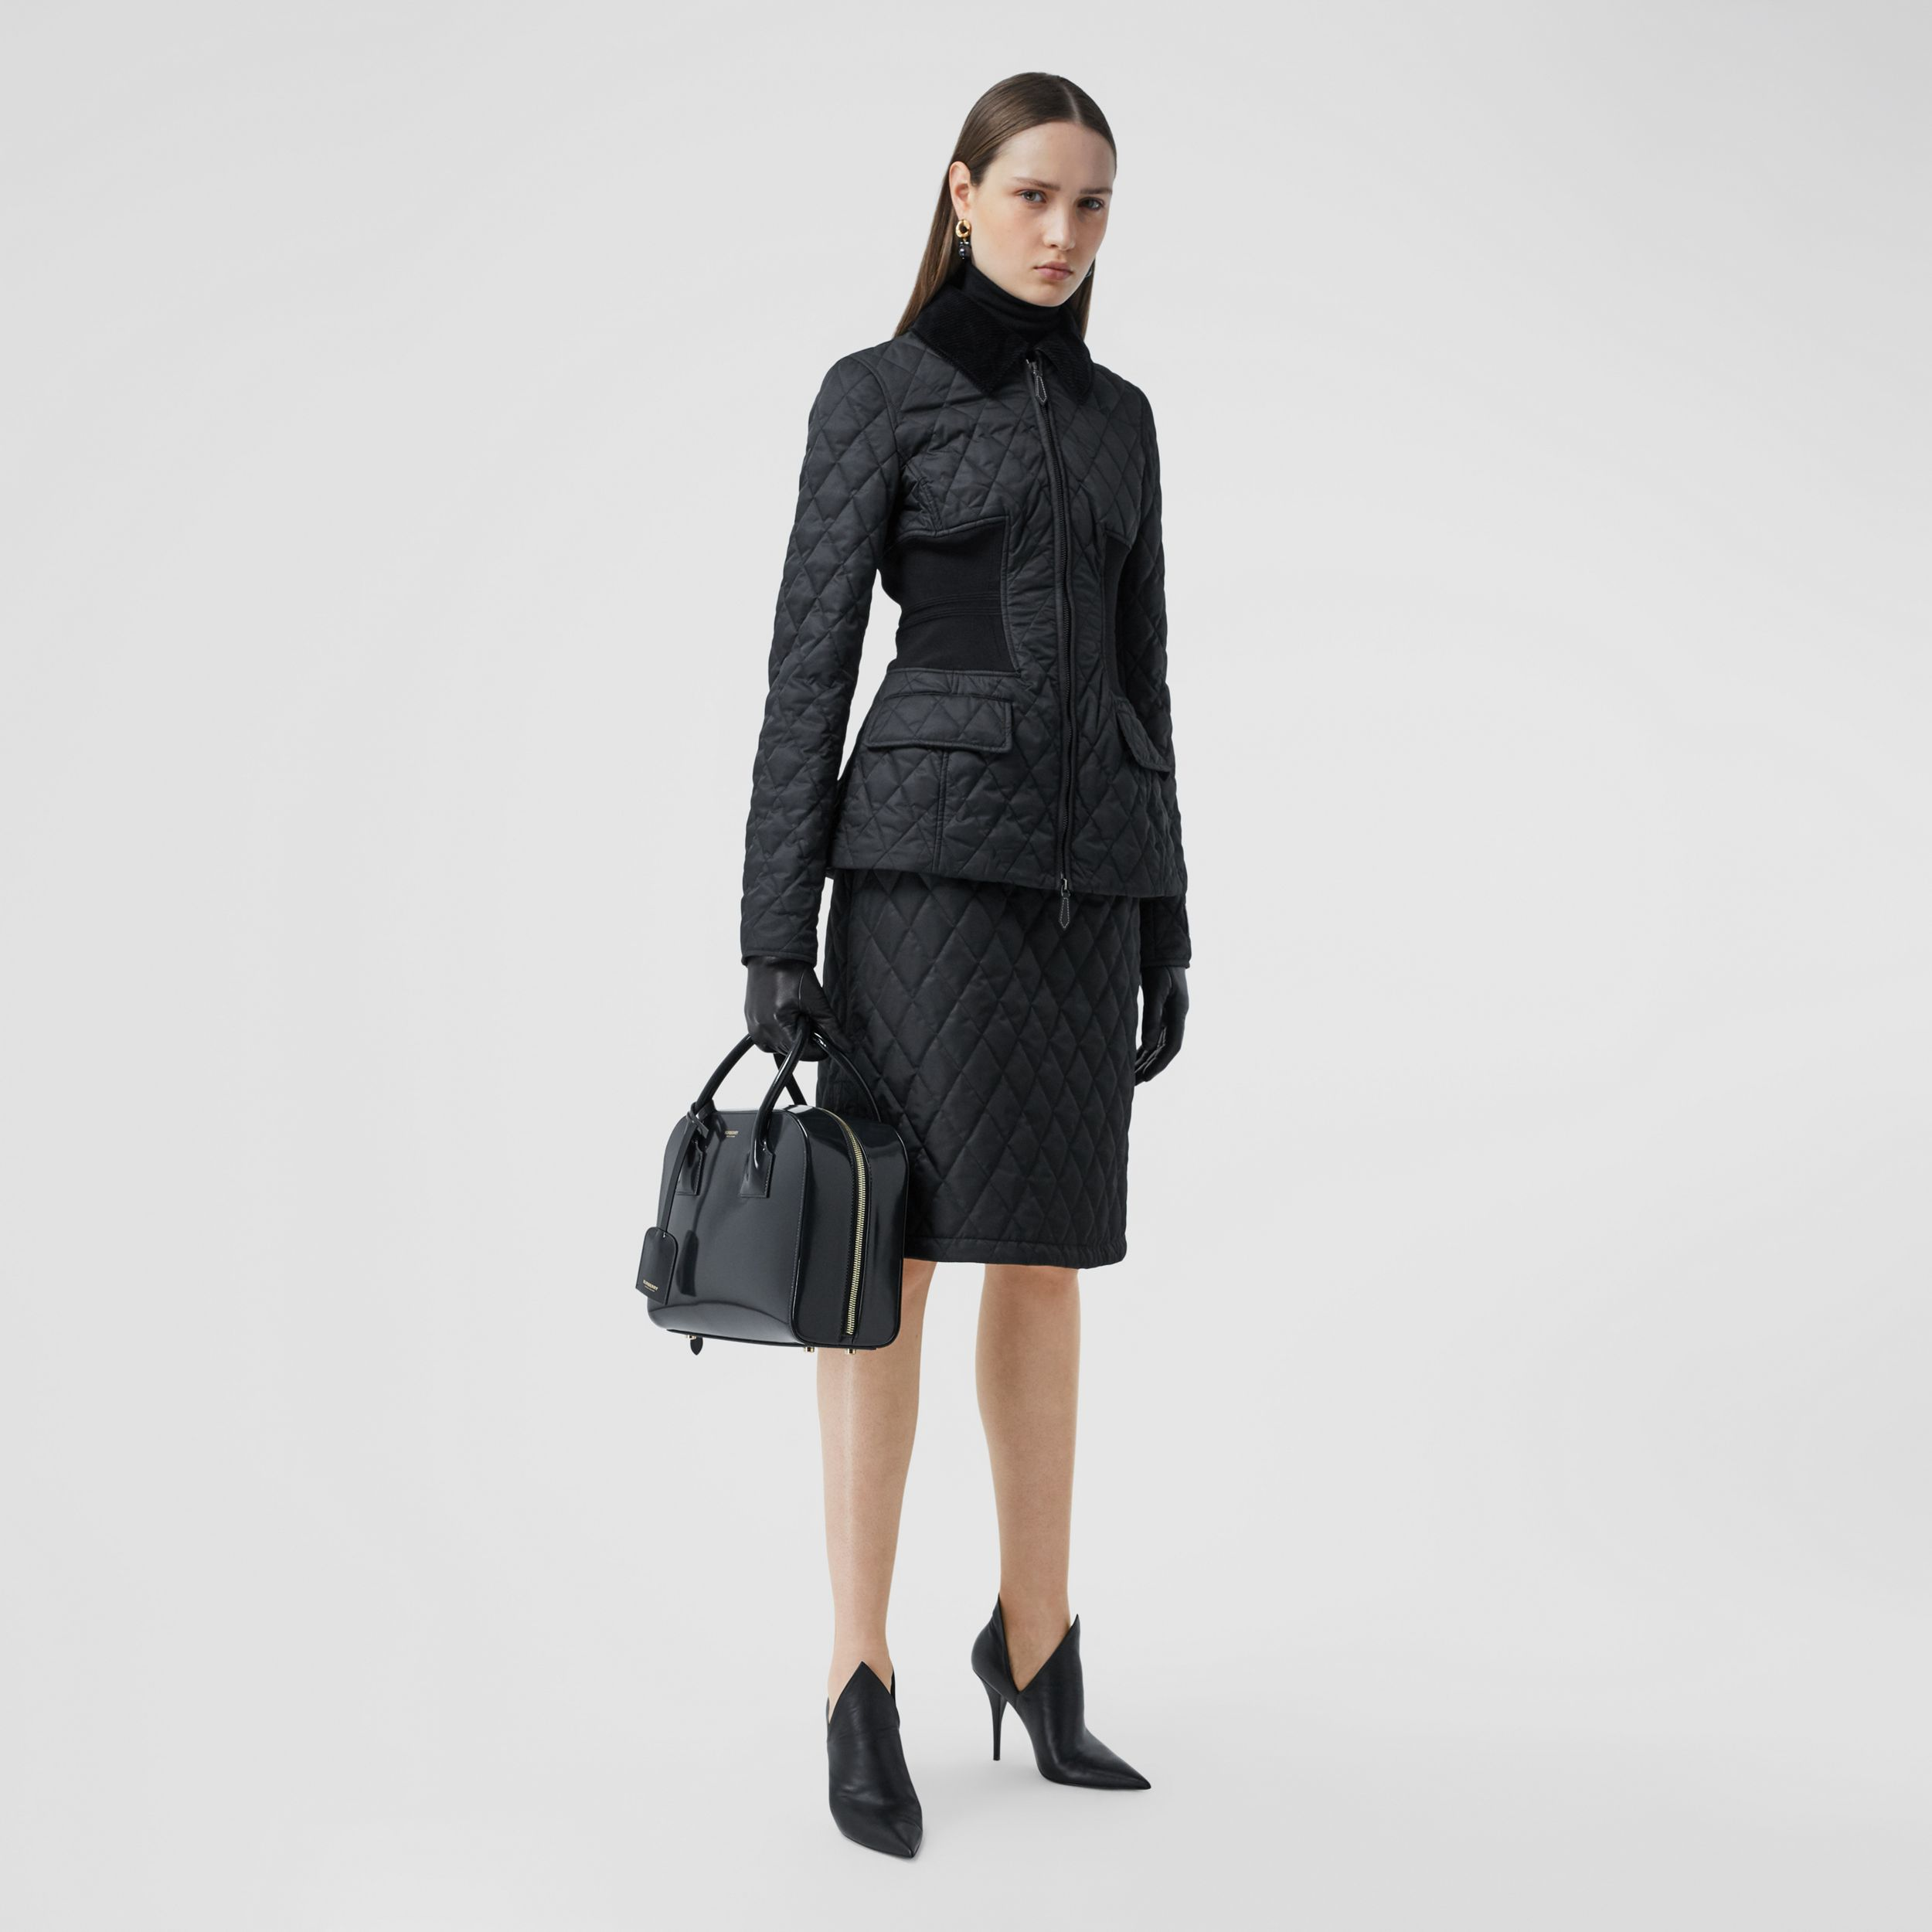 Diamond Quilted A-line Skirt in Black - Women | Burberry Australia - 1